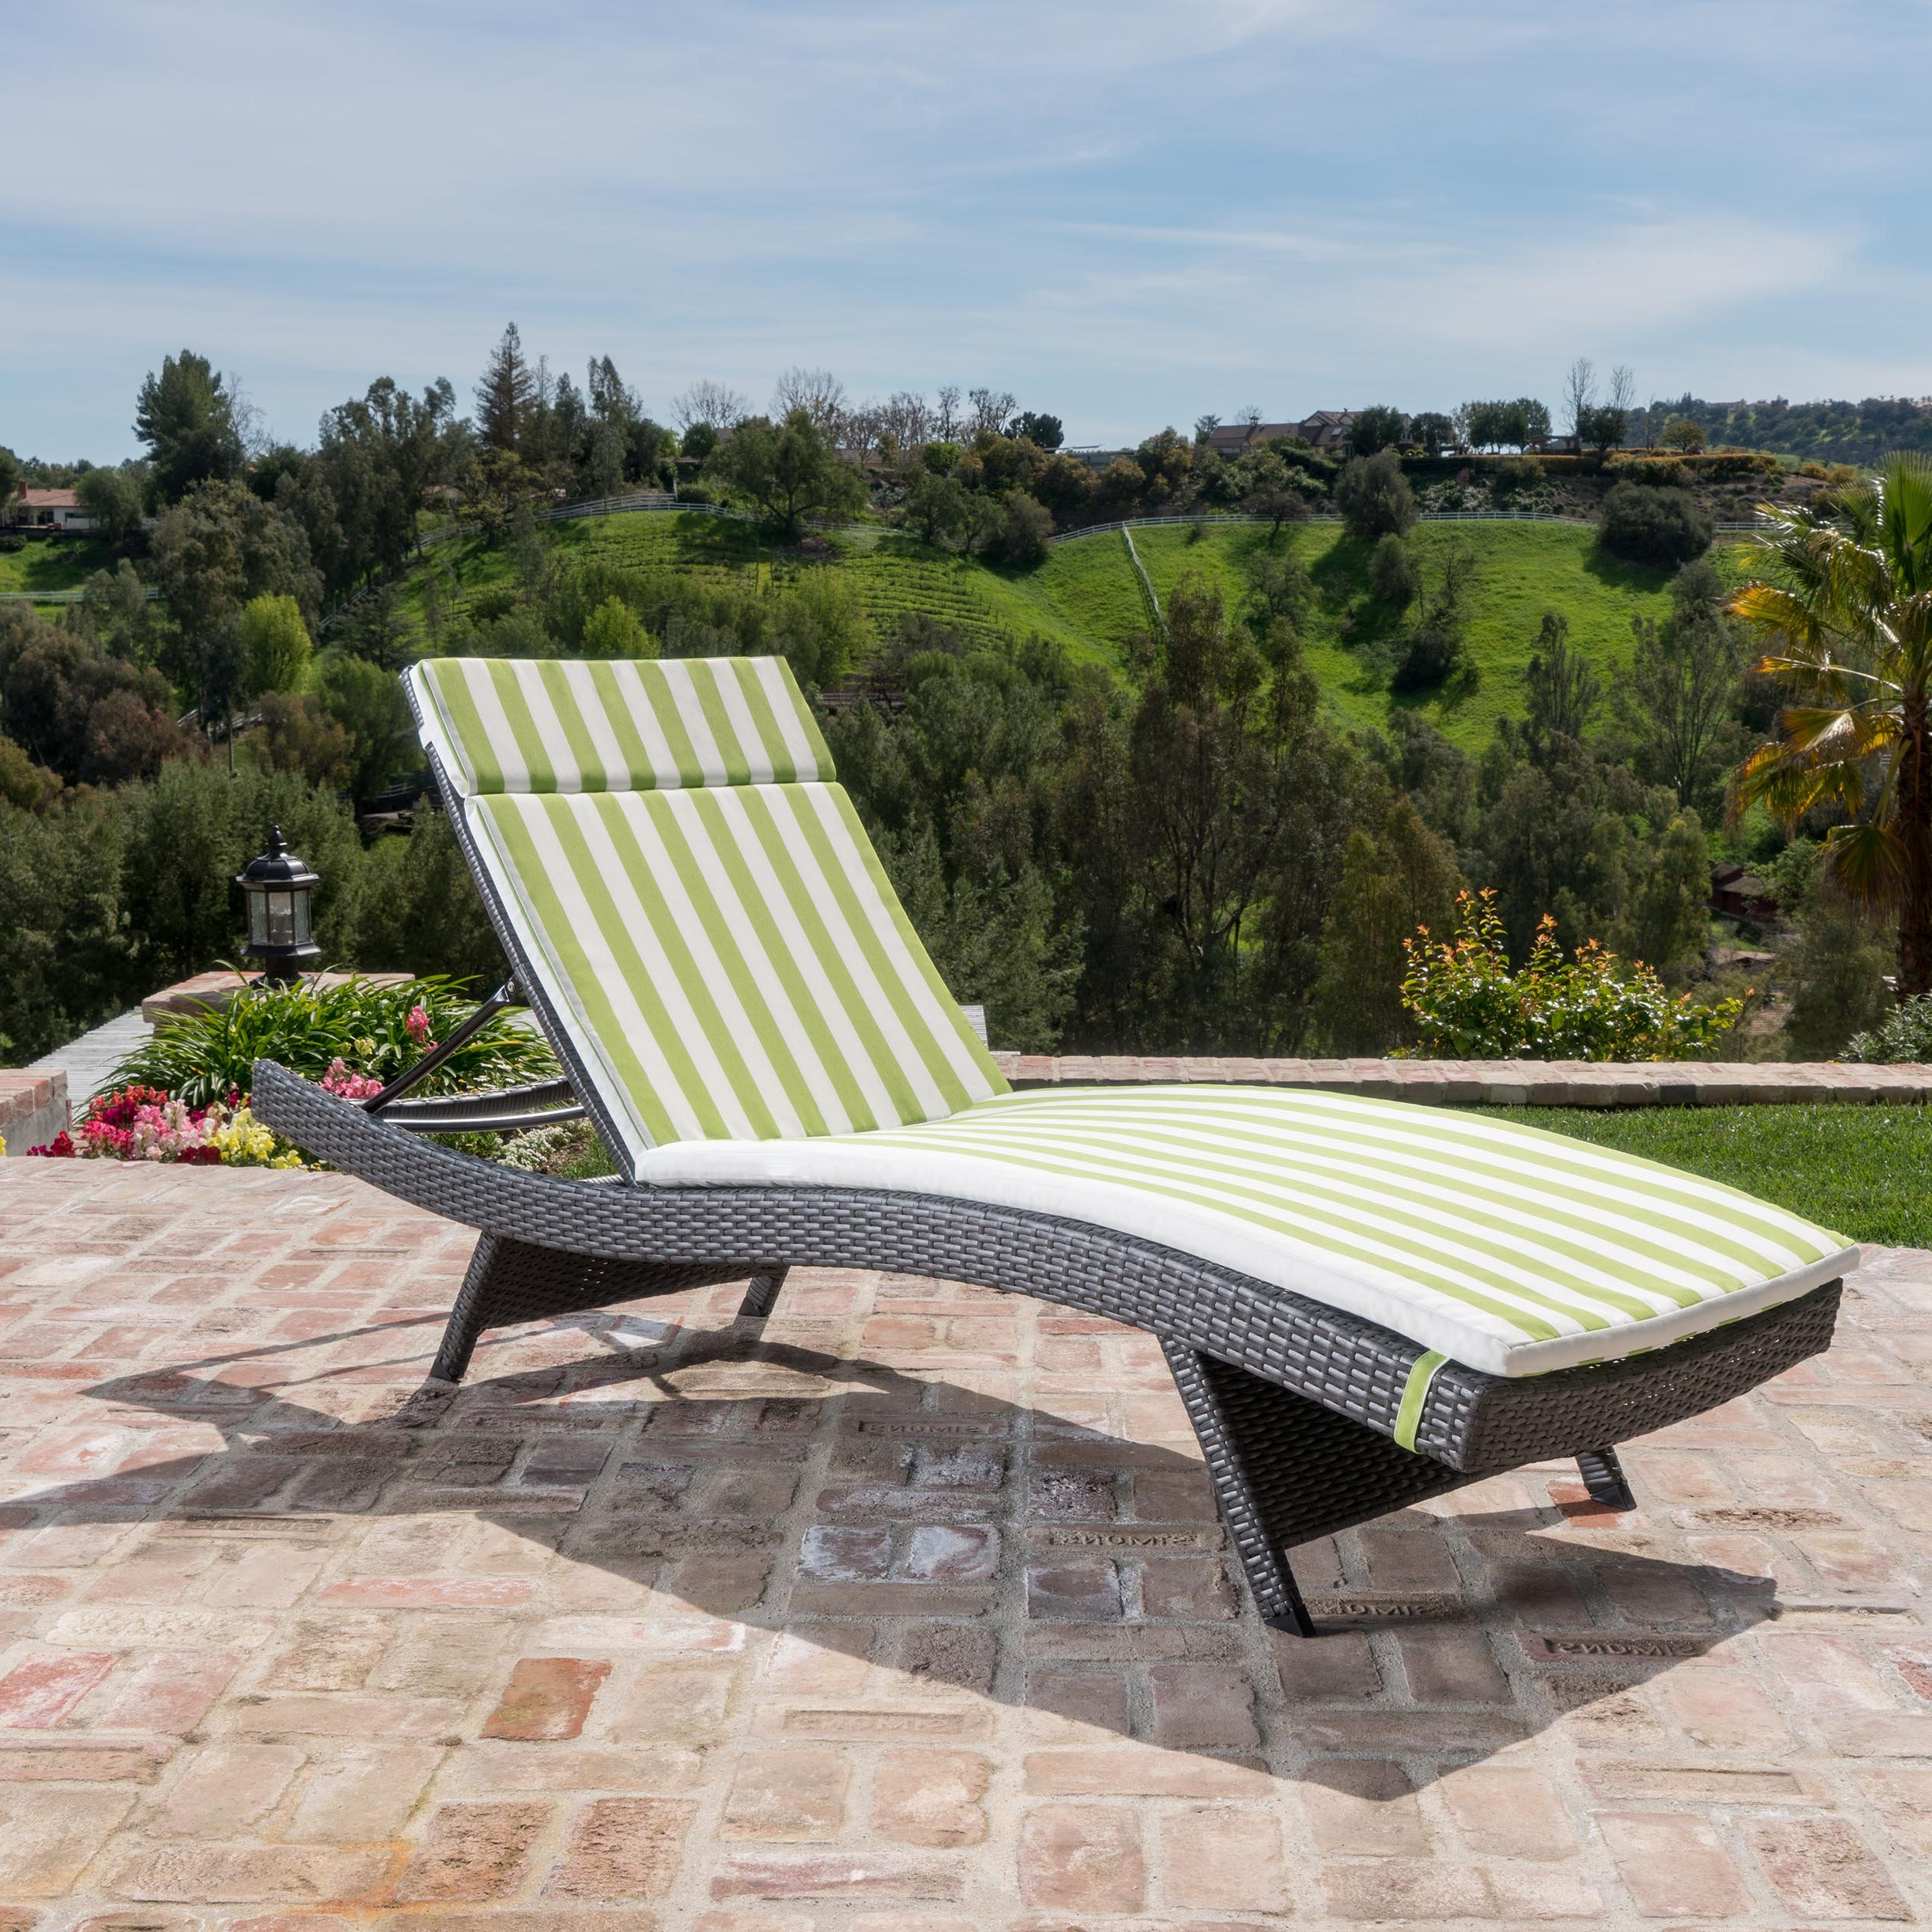 Rebello Wicker Chaise Lounge With Cushion Intended For Favorite White Wicker Adjustable Chaise Loungers With Cushions (View 24 of 25)